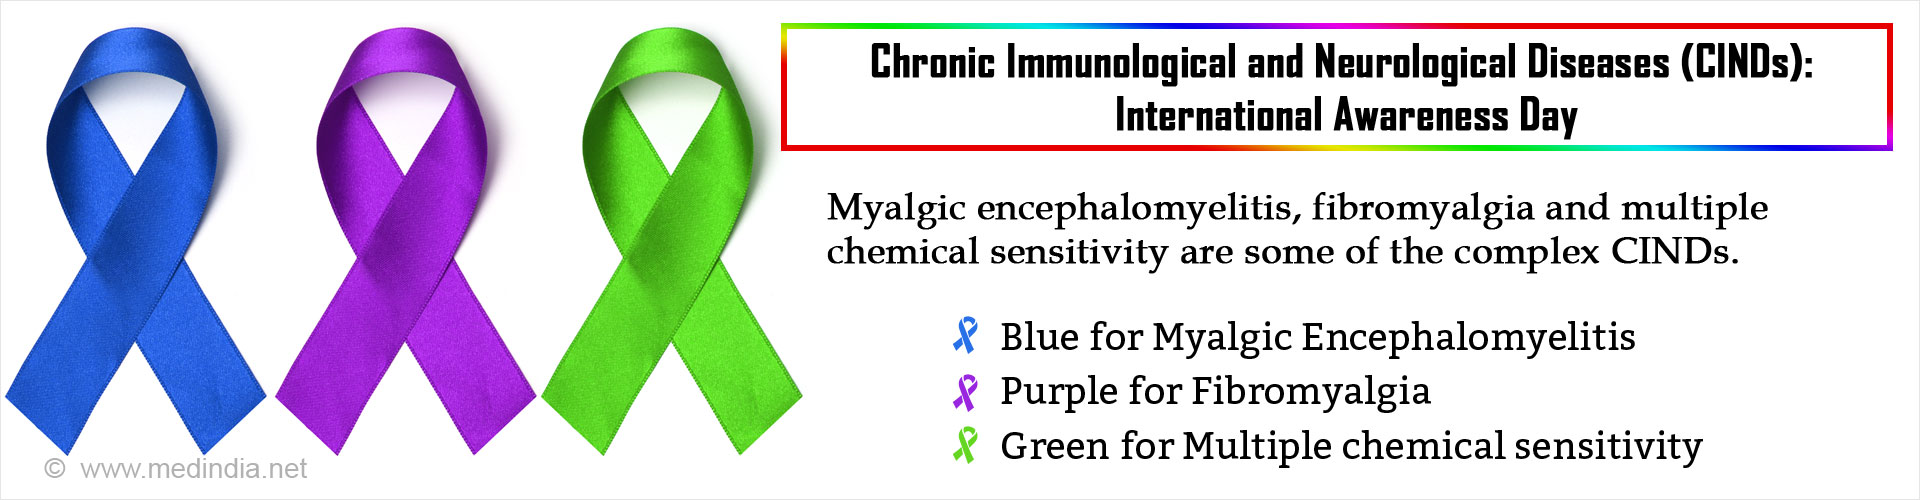 International Awareness Day for Chronic Immunological and Neurological Diseases